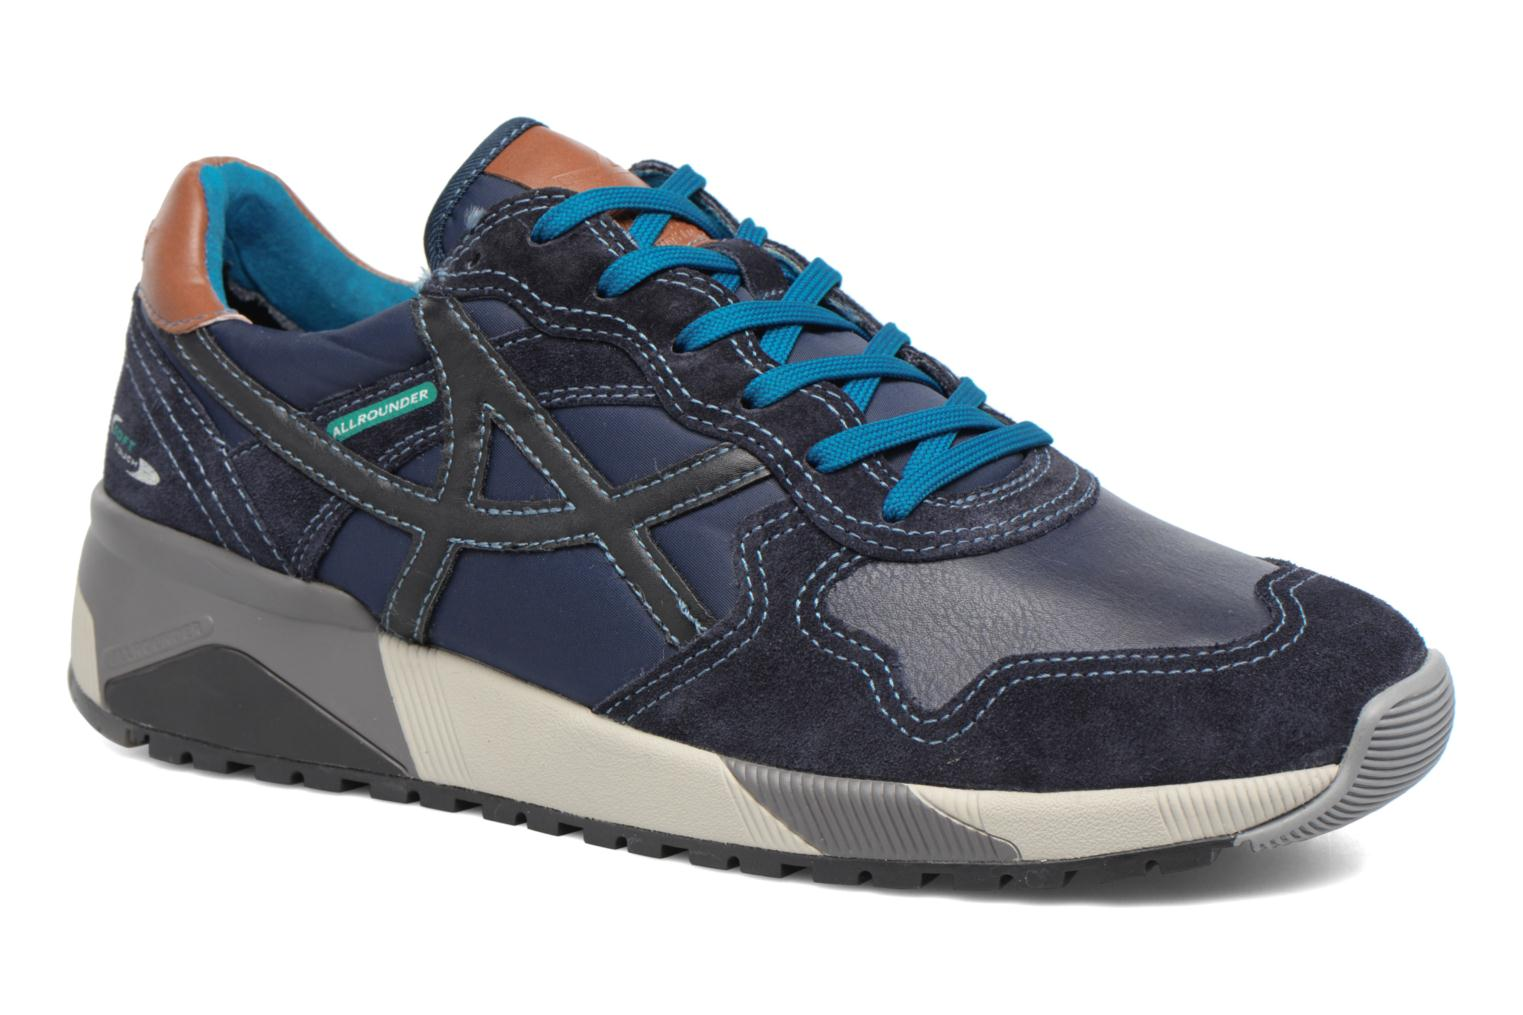 Sneakers Allrounder by Mephisto Blauw